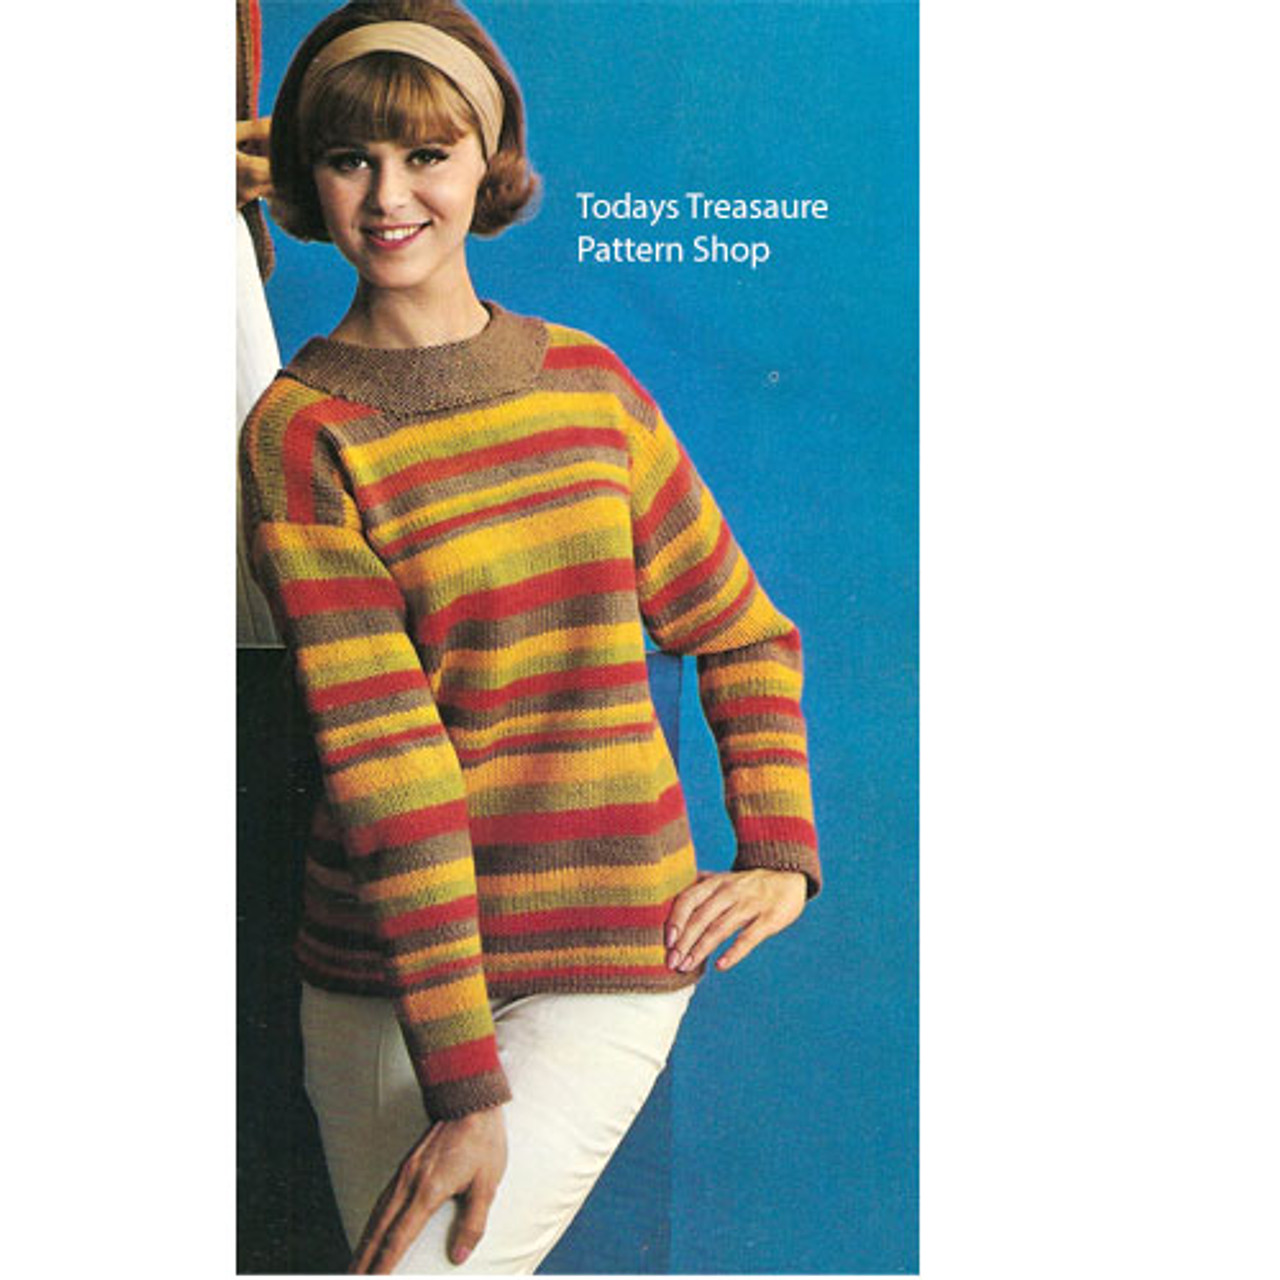 Vintage Knitting Pattern for Striped Sweater